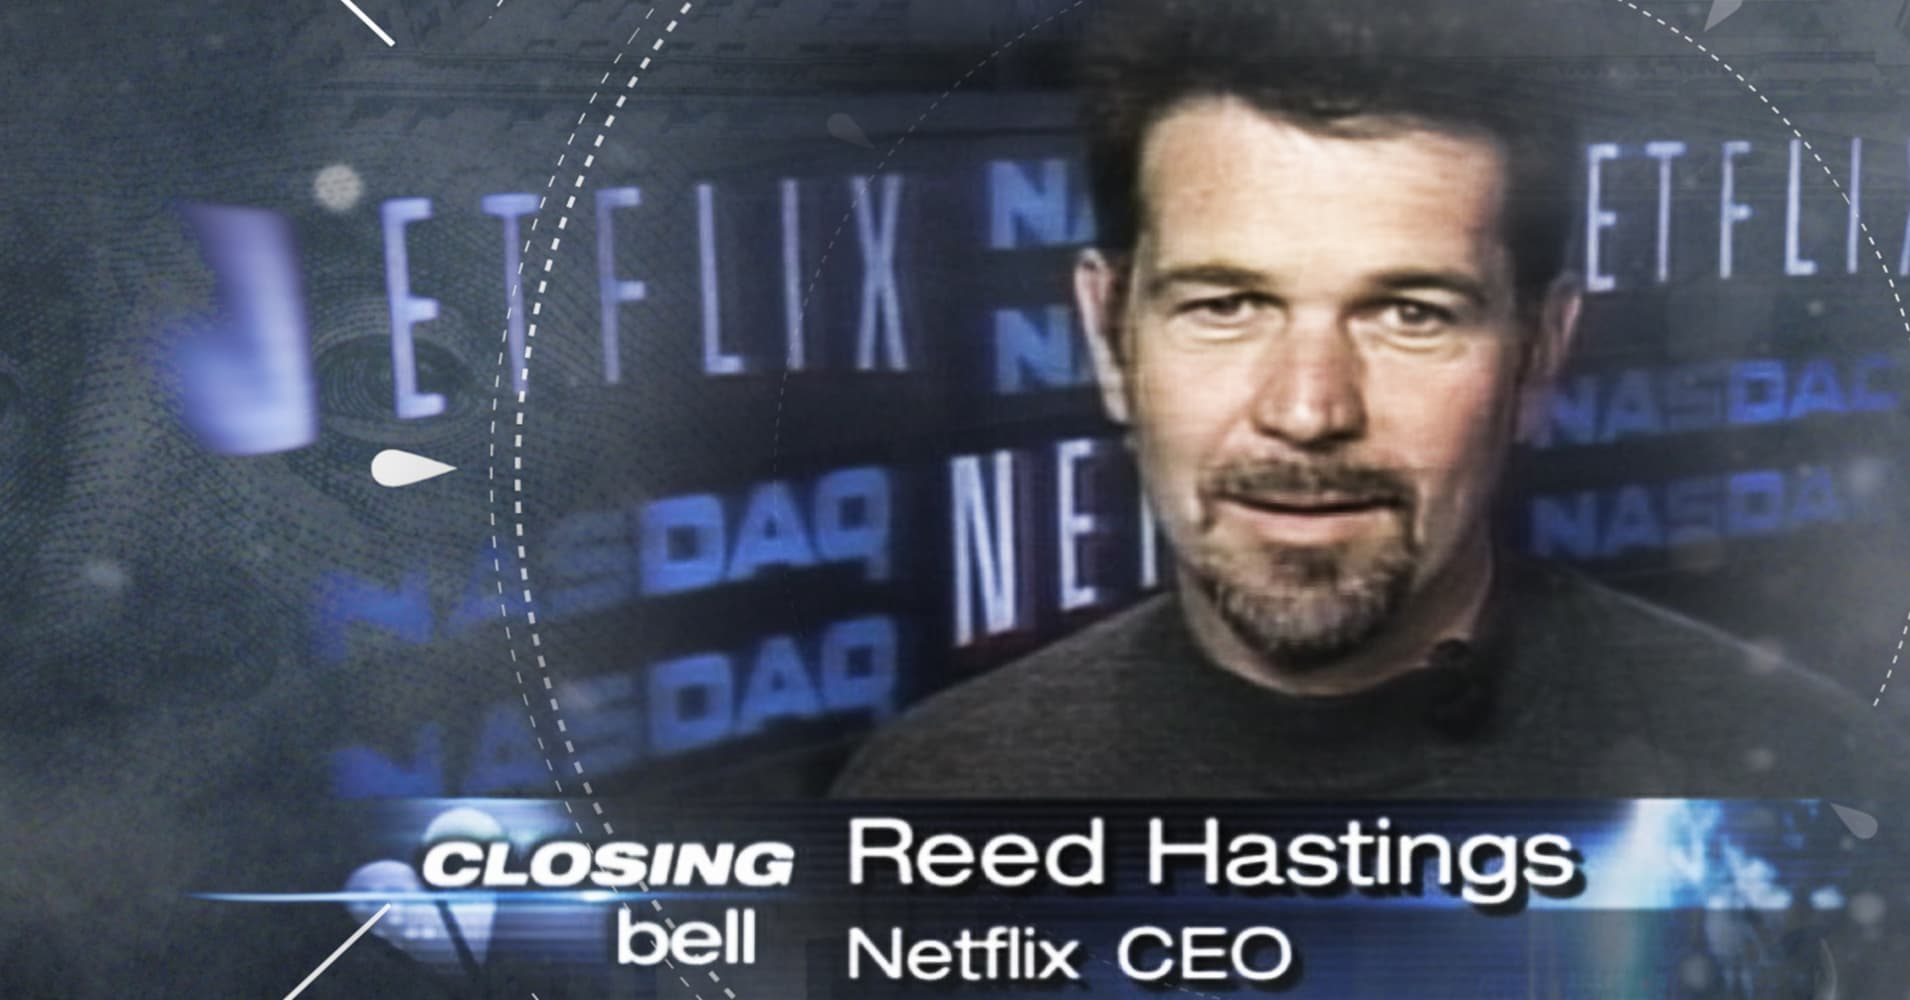 Netflix's IPO in 2002: Watch CNBC's coverage